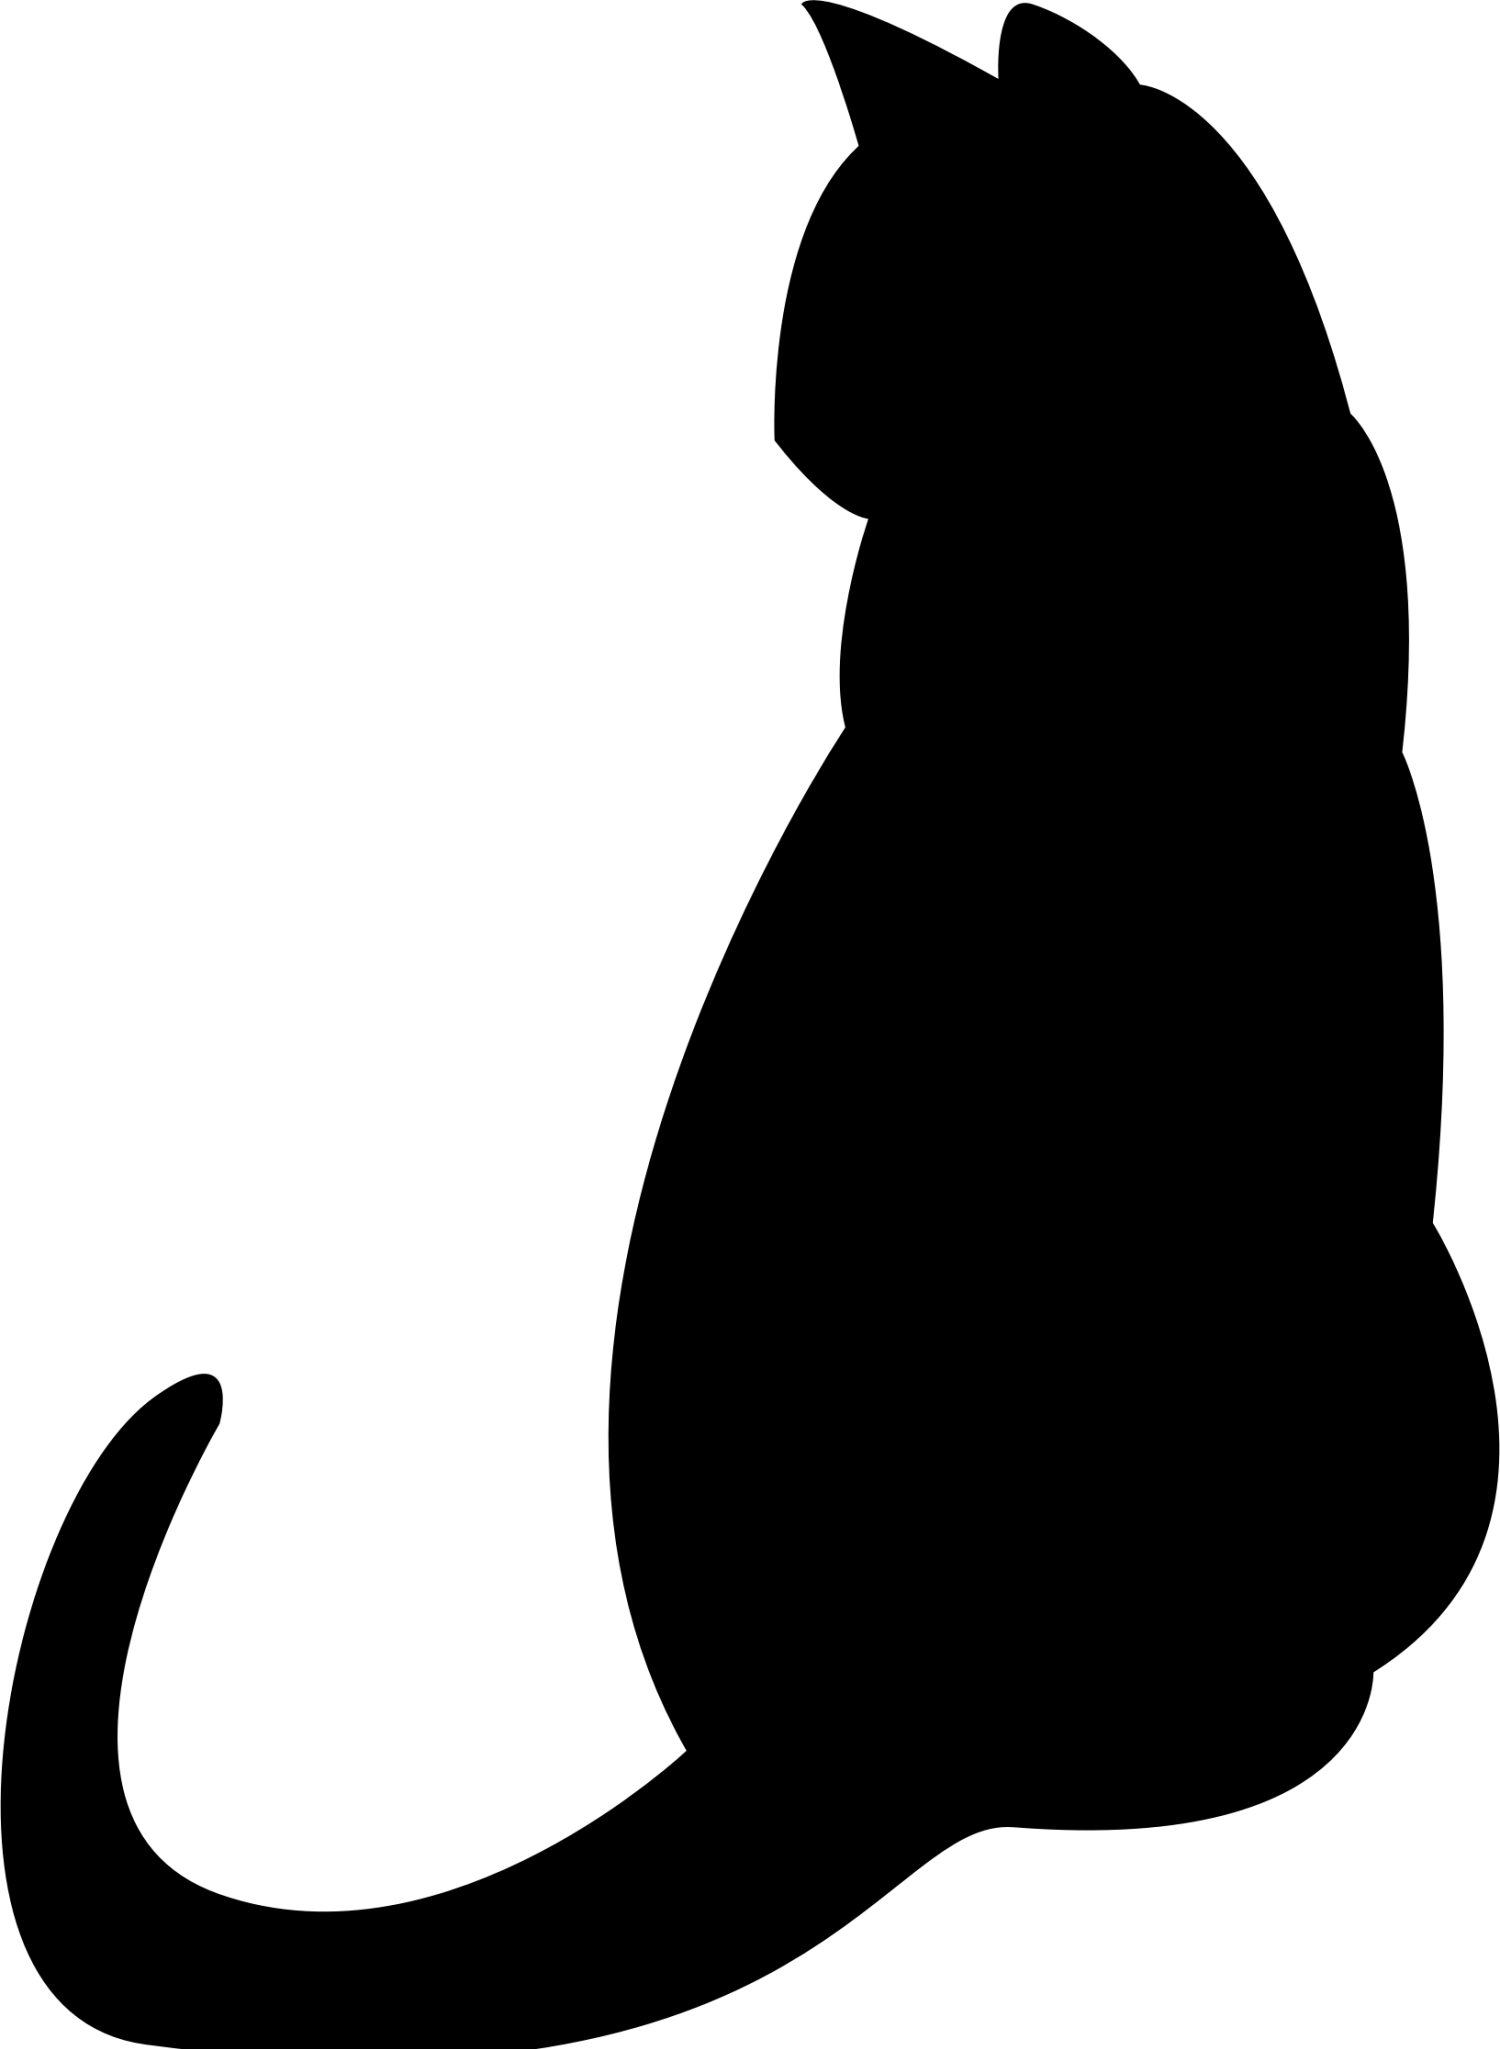 cat clipart transparent background - HD 820×1159